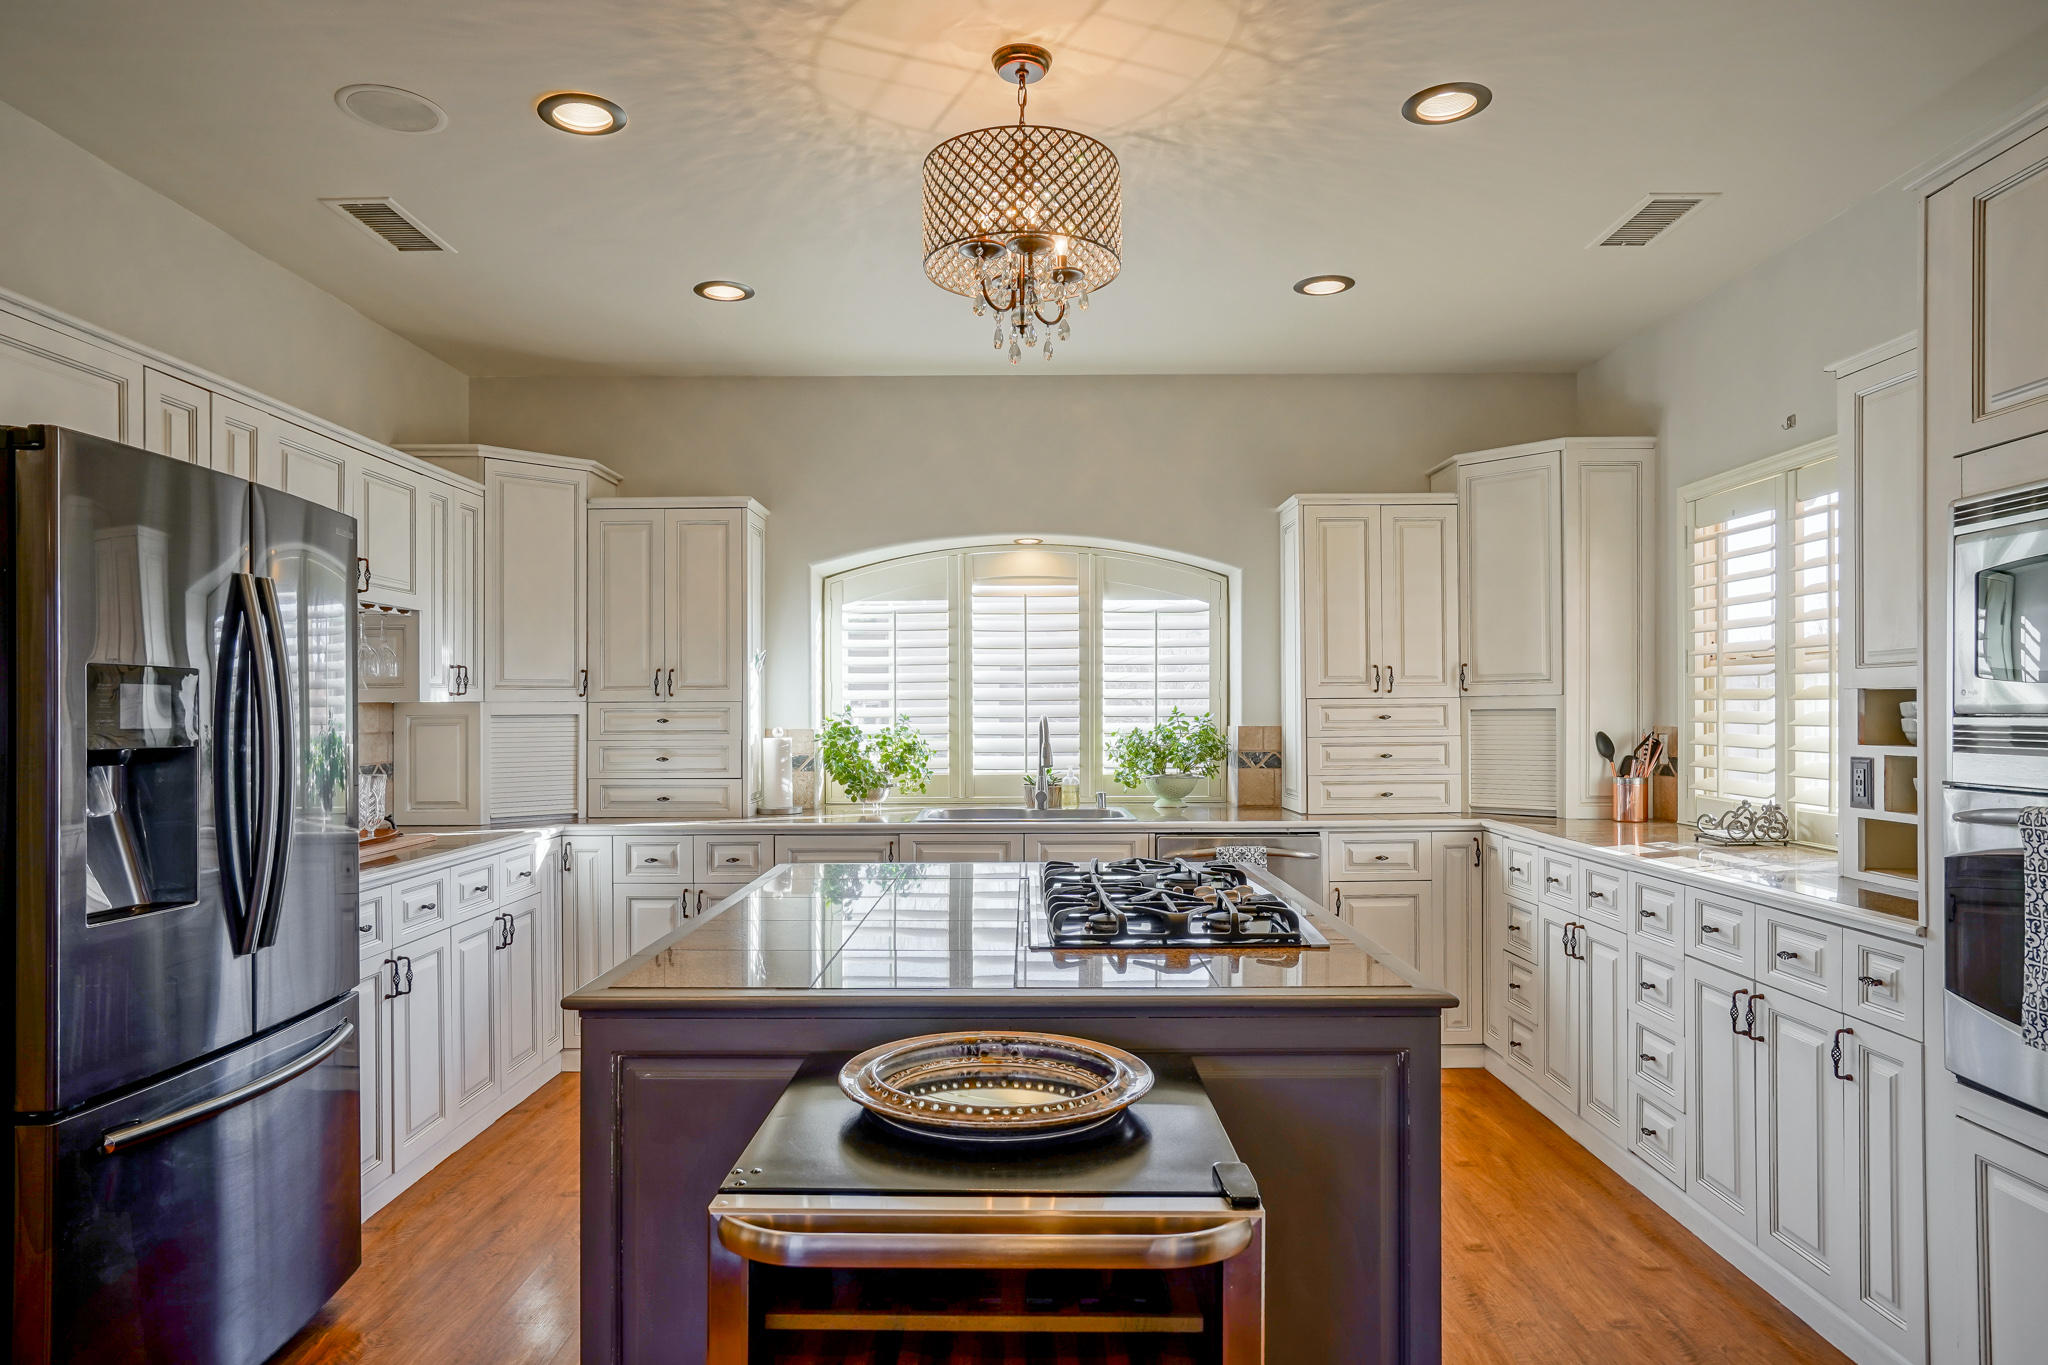 Elegant custom two story home on 1.03 acres! Wood beamed Ceilings, Three fireplaces and lots of high end finishes are just a few of the must see details your new home has to offer!  Step into the private courtyard perfect for outdoor dining or lounging with friends. The stunning kitchen is a chef's dream with gas cooktop and large kitchen Island!  There is even a Butler pantry! Huge master suite with updated bathroom and large deck for viewing the Sandia Mountains. Soak in the Jetted tub in the Master bathroom as you wash away your day next to a gas log fireplace. Two rooms down stairs share a beautiful Jack and Jill full bath with dual sinks. Take a Virtual Walkthrough tour today! Hurry! This one wont last long!